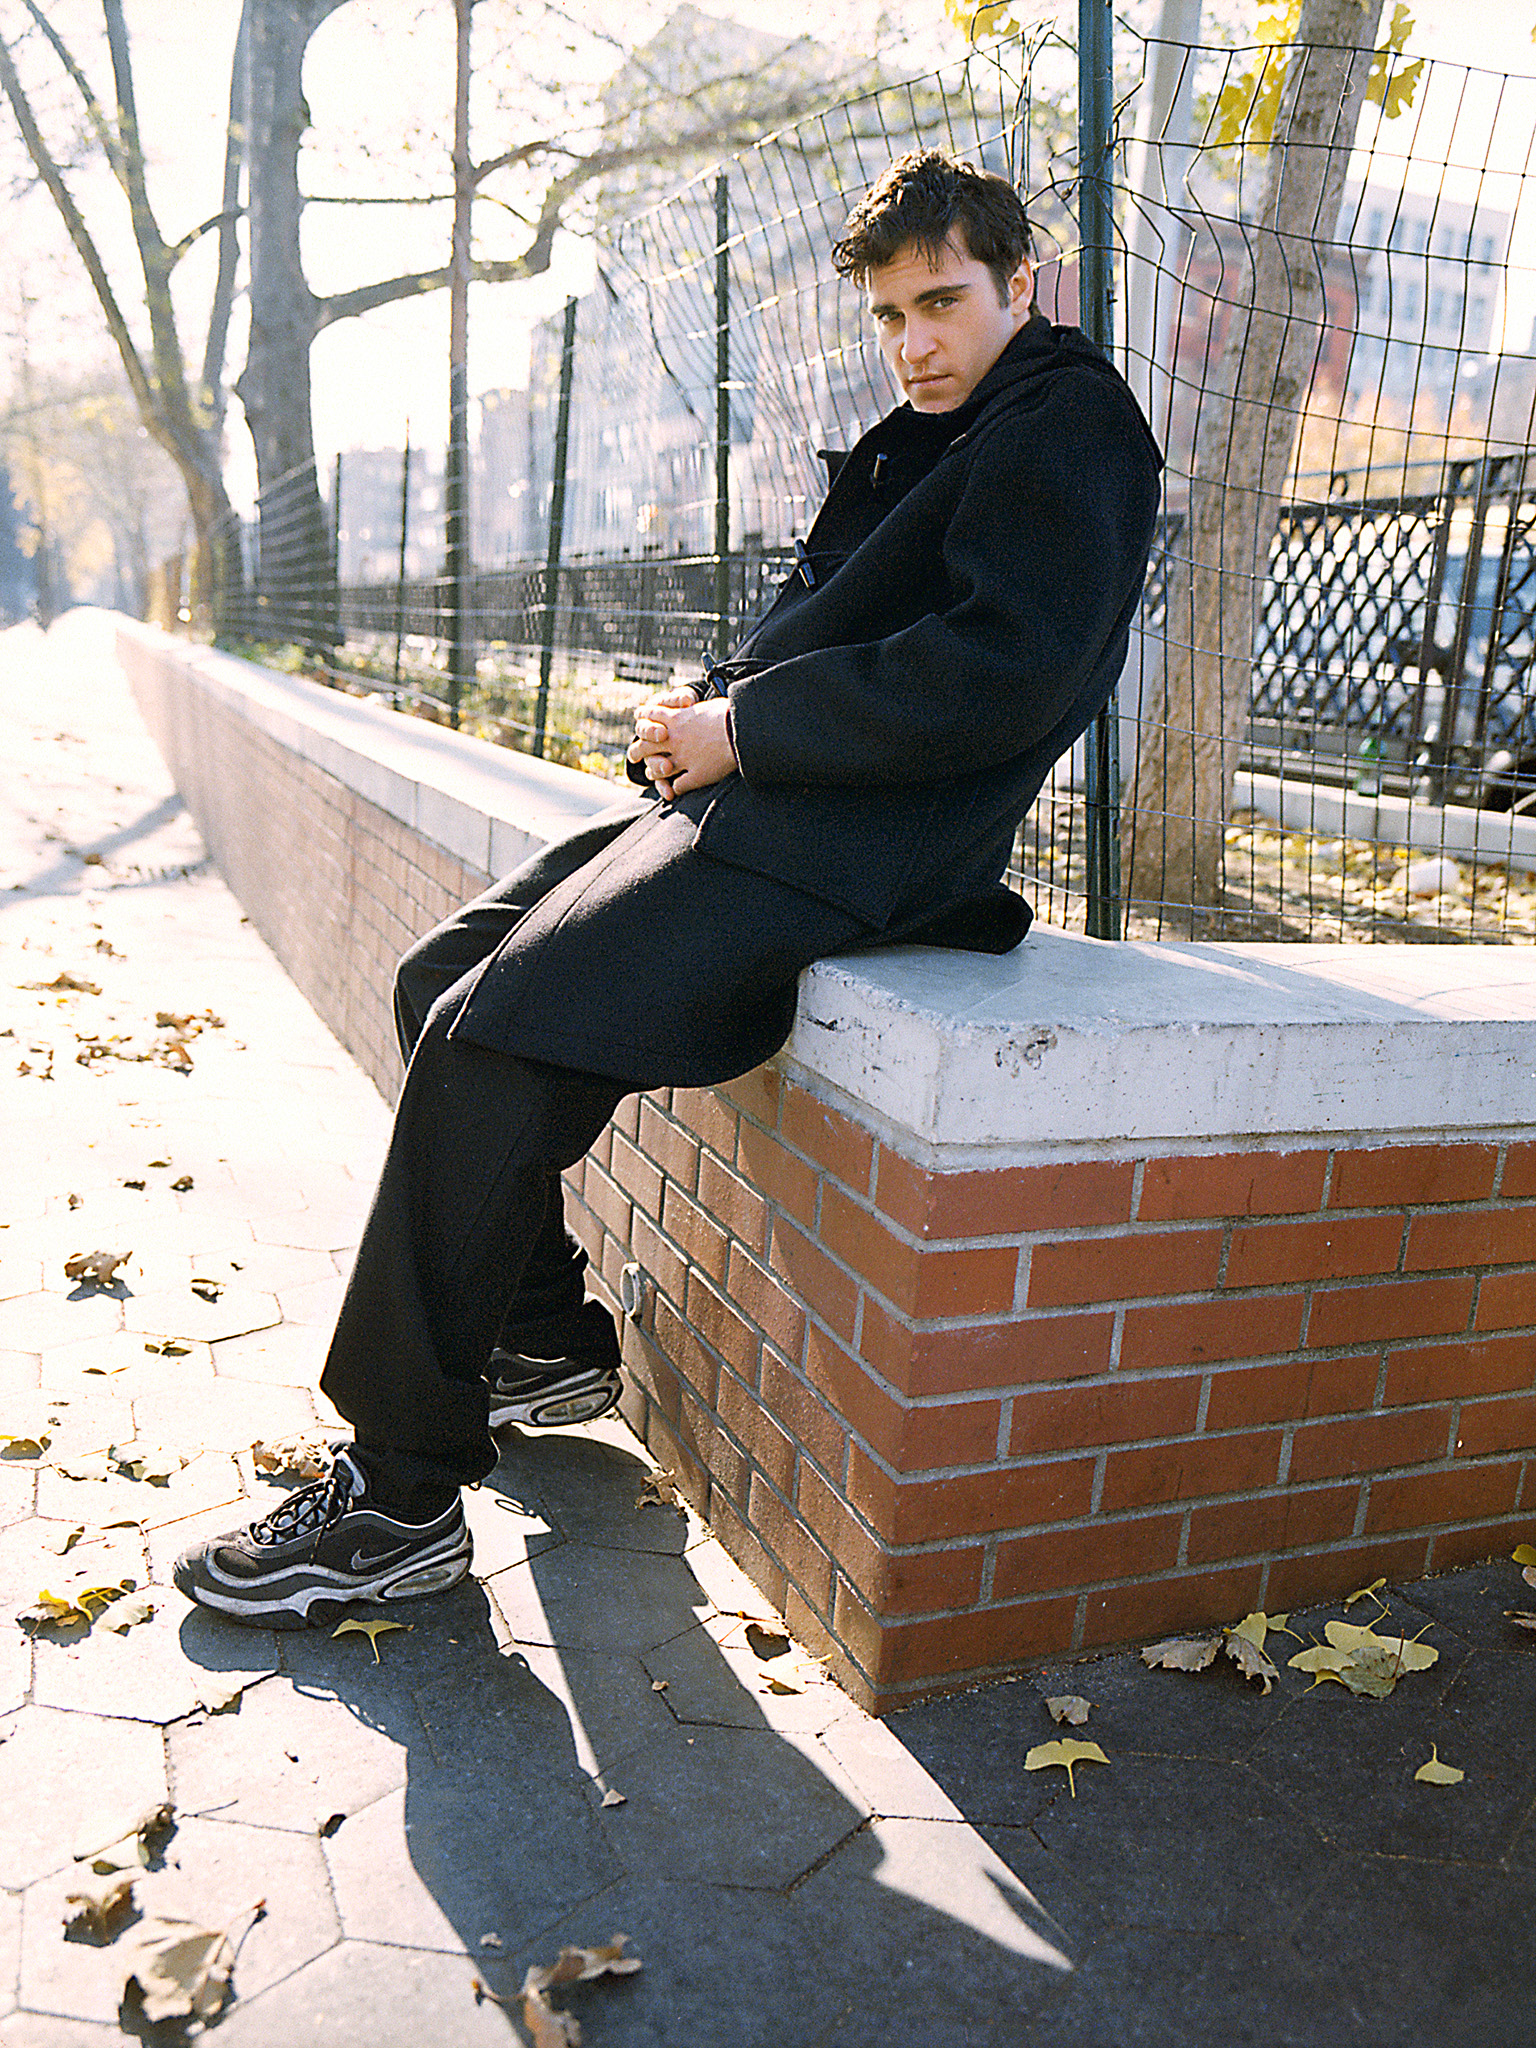 Joaquin Phoenix by Patrik Andersson on the Lower East Side of New York City